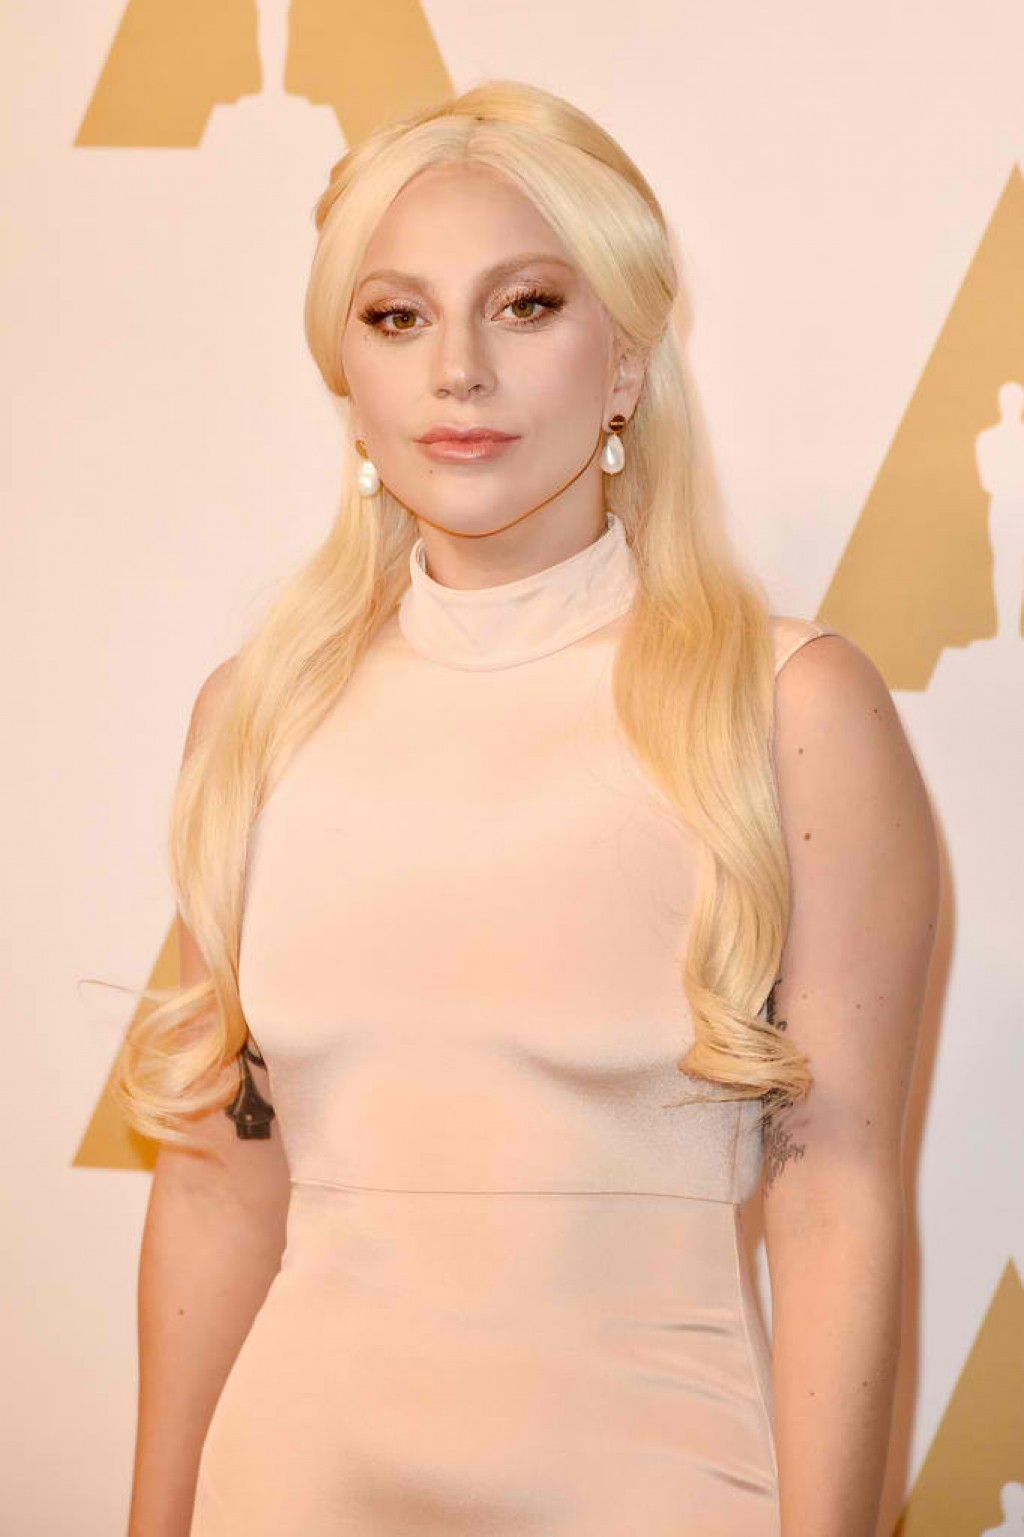 88th-Annual-Academy-Awards-Nominee-Luncheon-Lady-Gaga-Dress-1024x1537